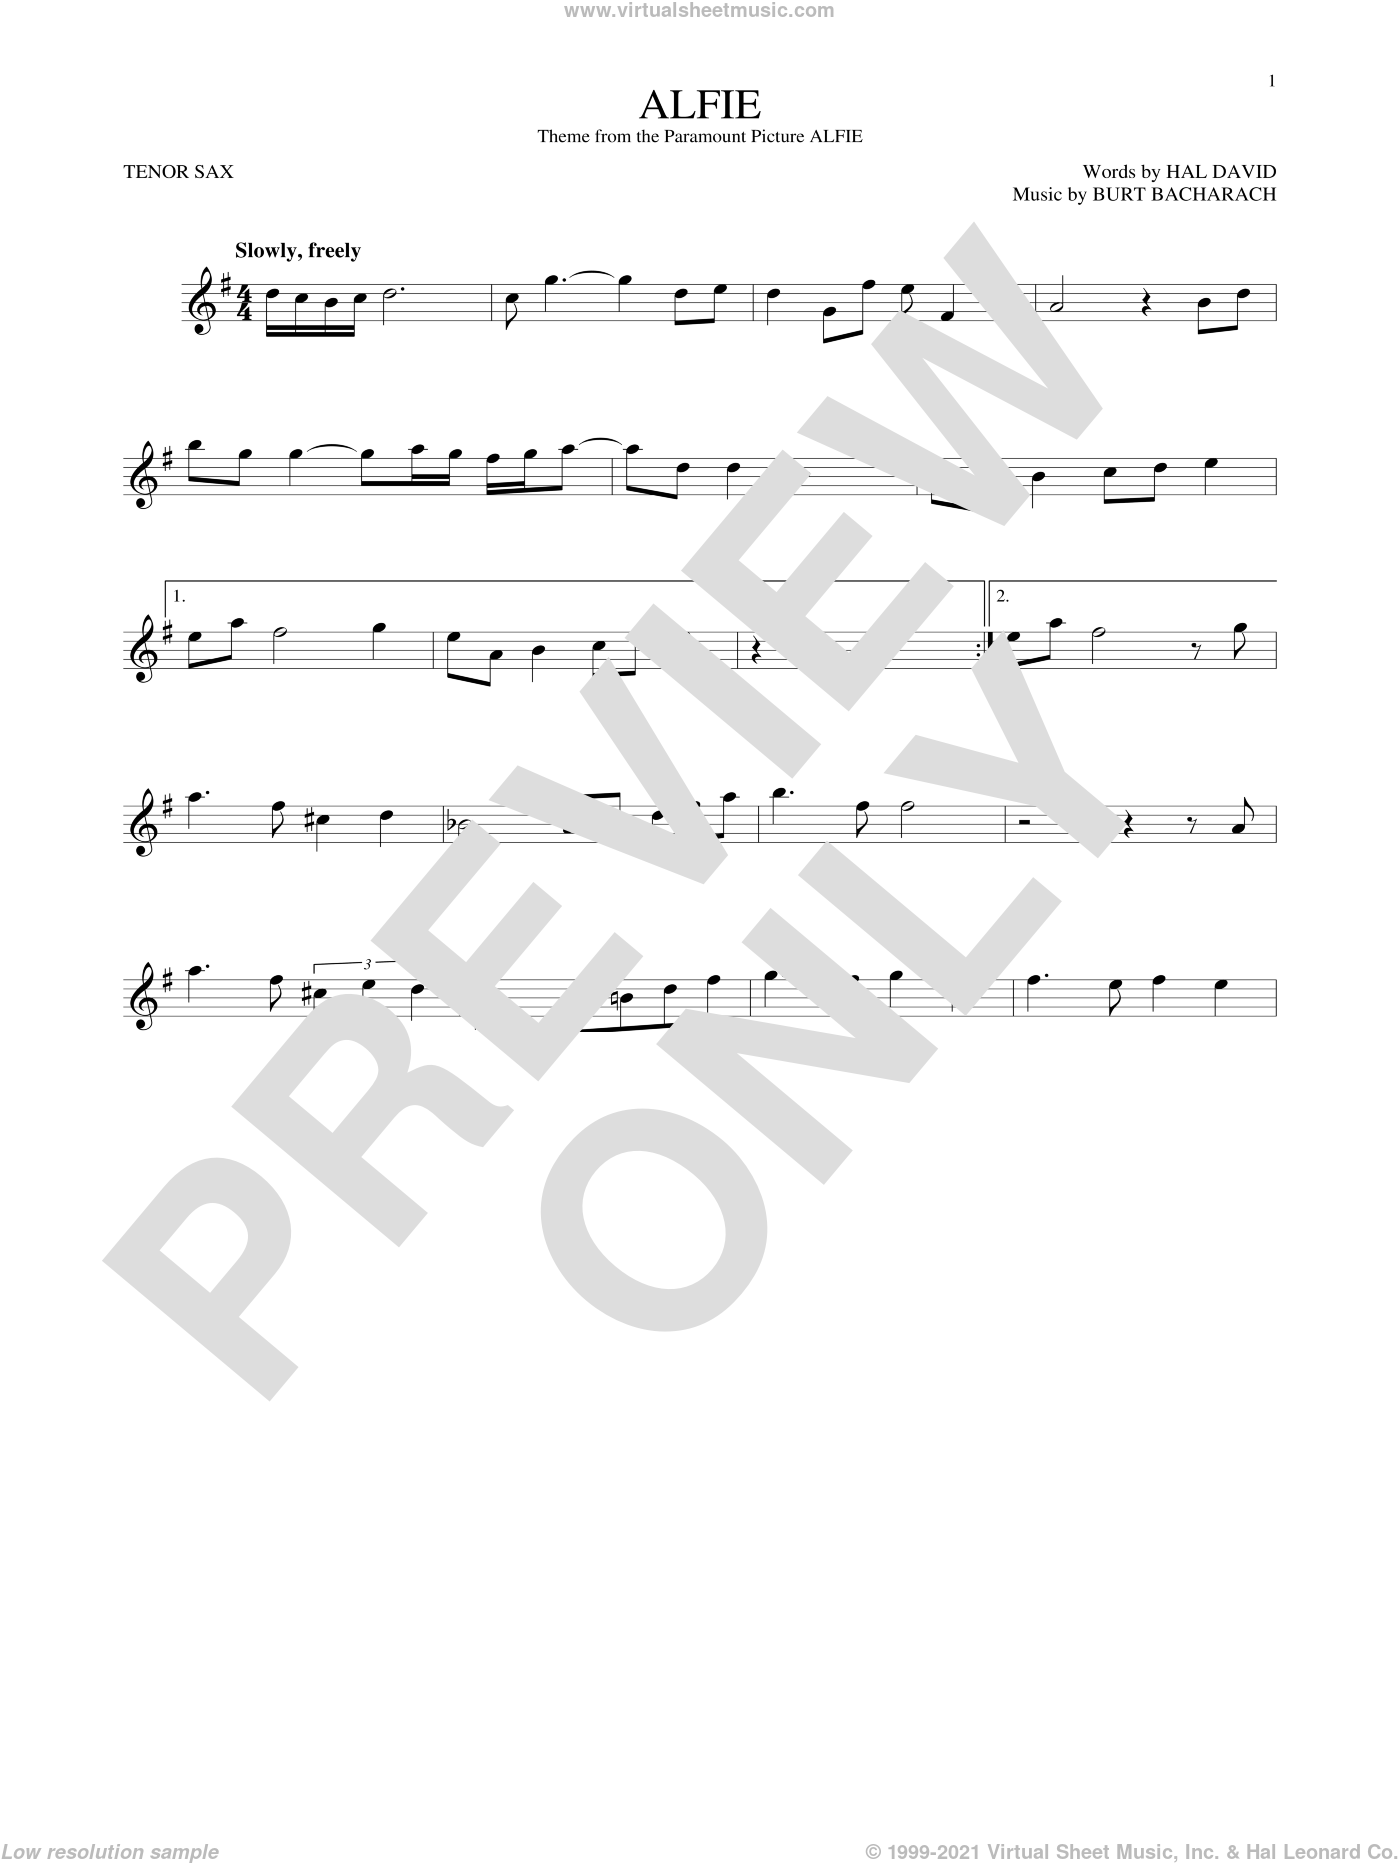 Alfie sheet music for tenor saxophone solo ( Sax) by Dionne Warwick, Cher, Miscellaneous, Sonny Rollins, Stevie Wonder, Burt Bacharach and Hal David, intermediate tenor saxophone ( Sax)